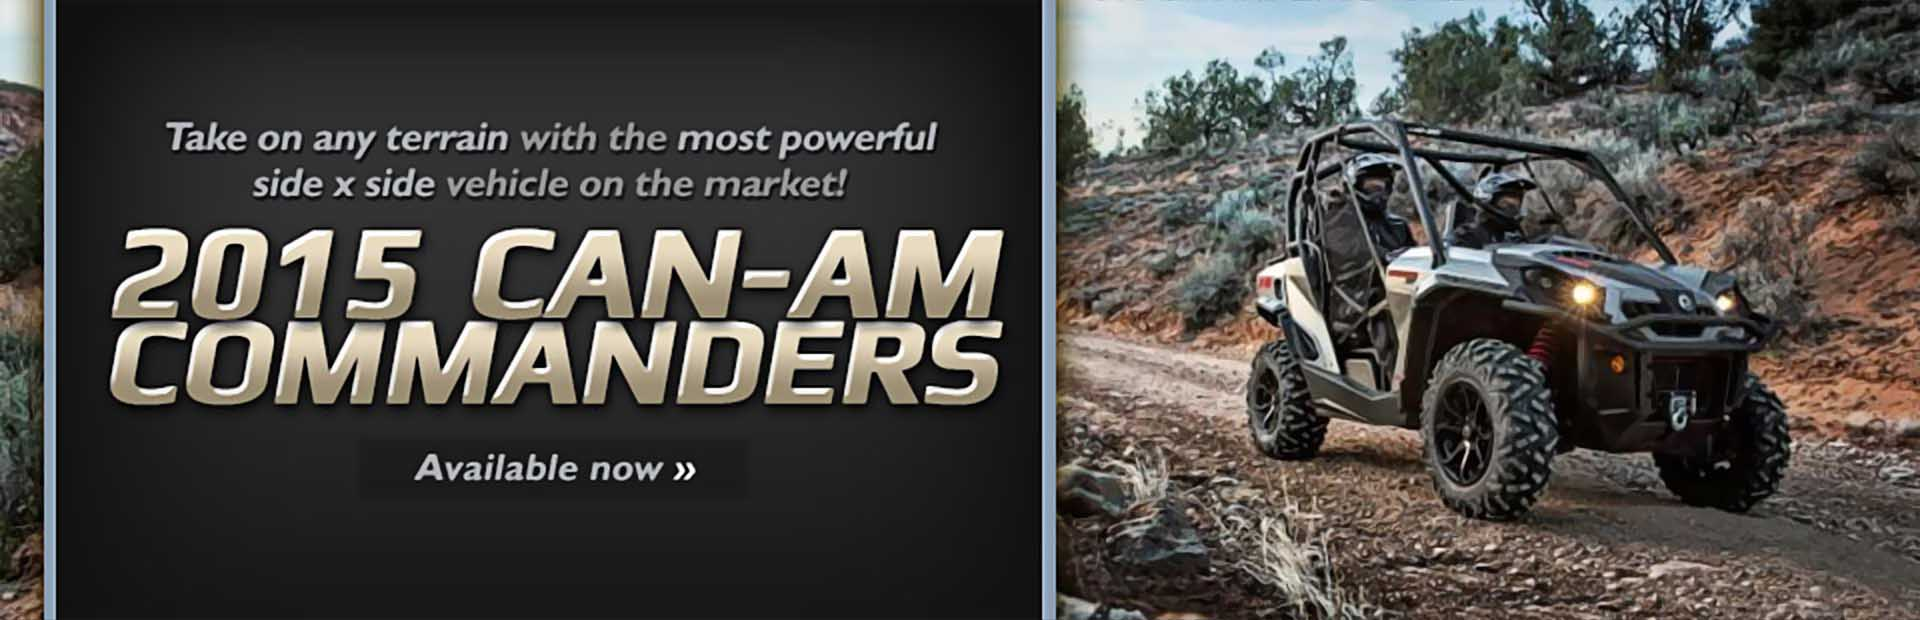 2015 Can-Am Commanders: Click here to view the models.